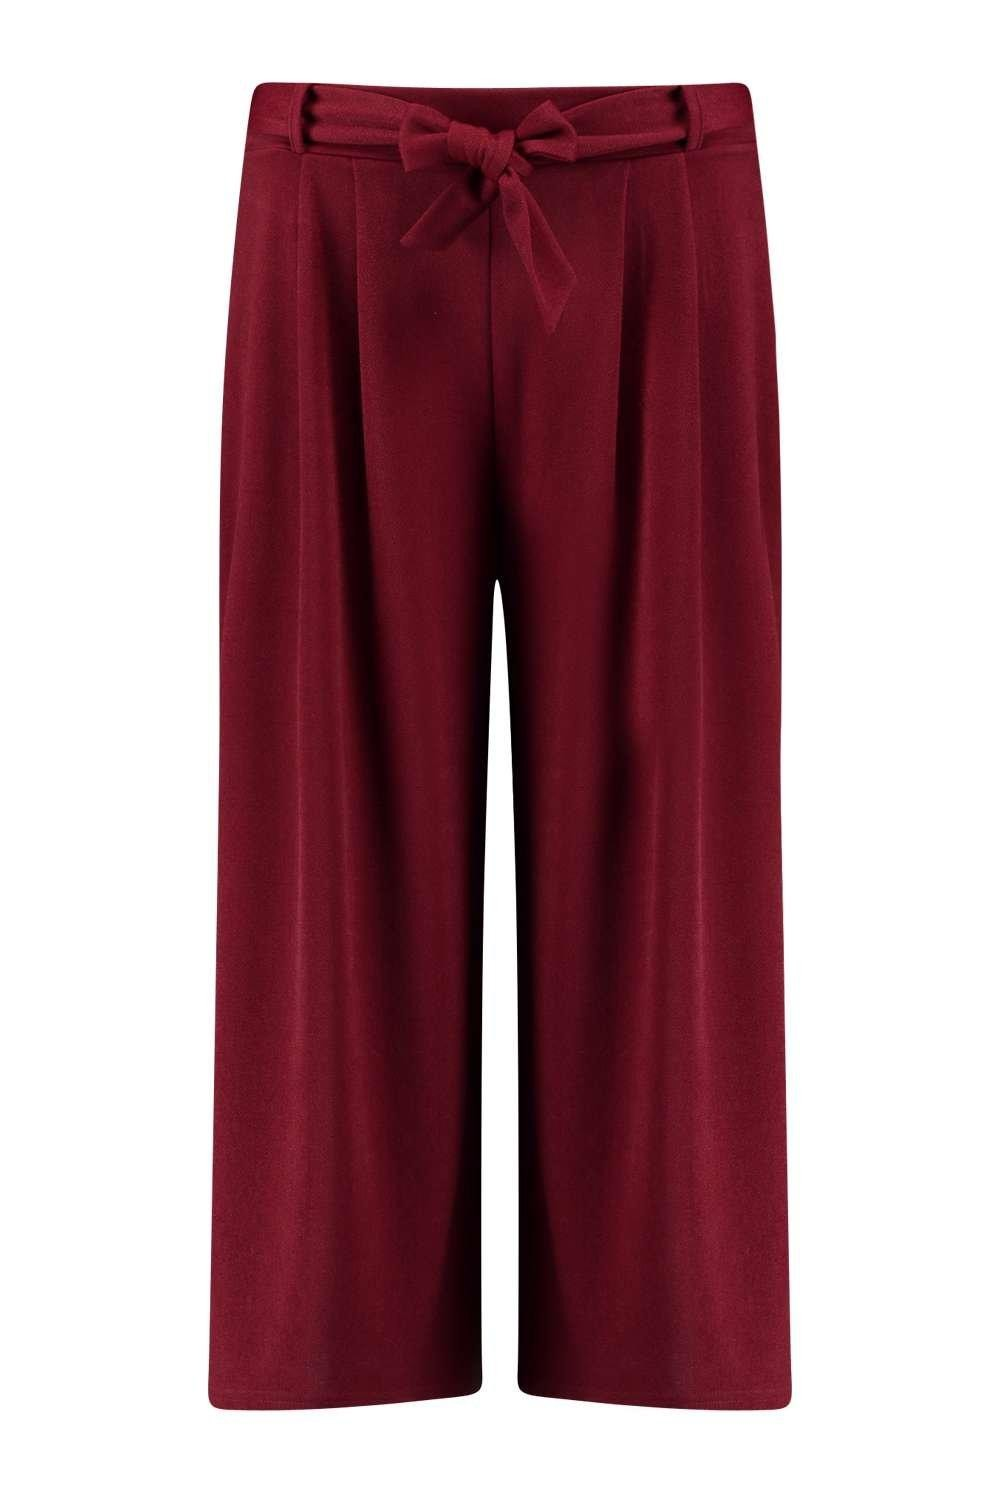 Summer Pants Selina Soft Crepe Red Pants For Ladies